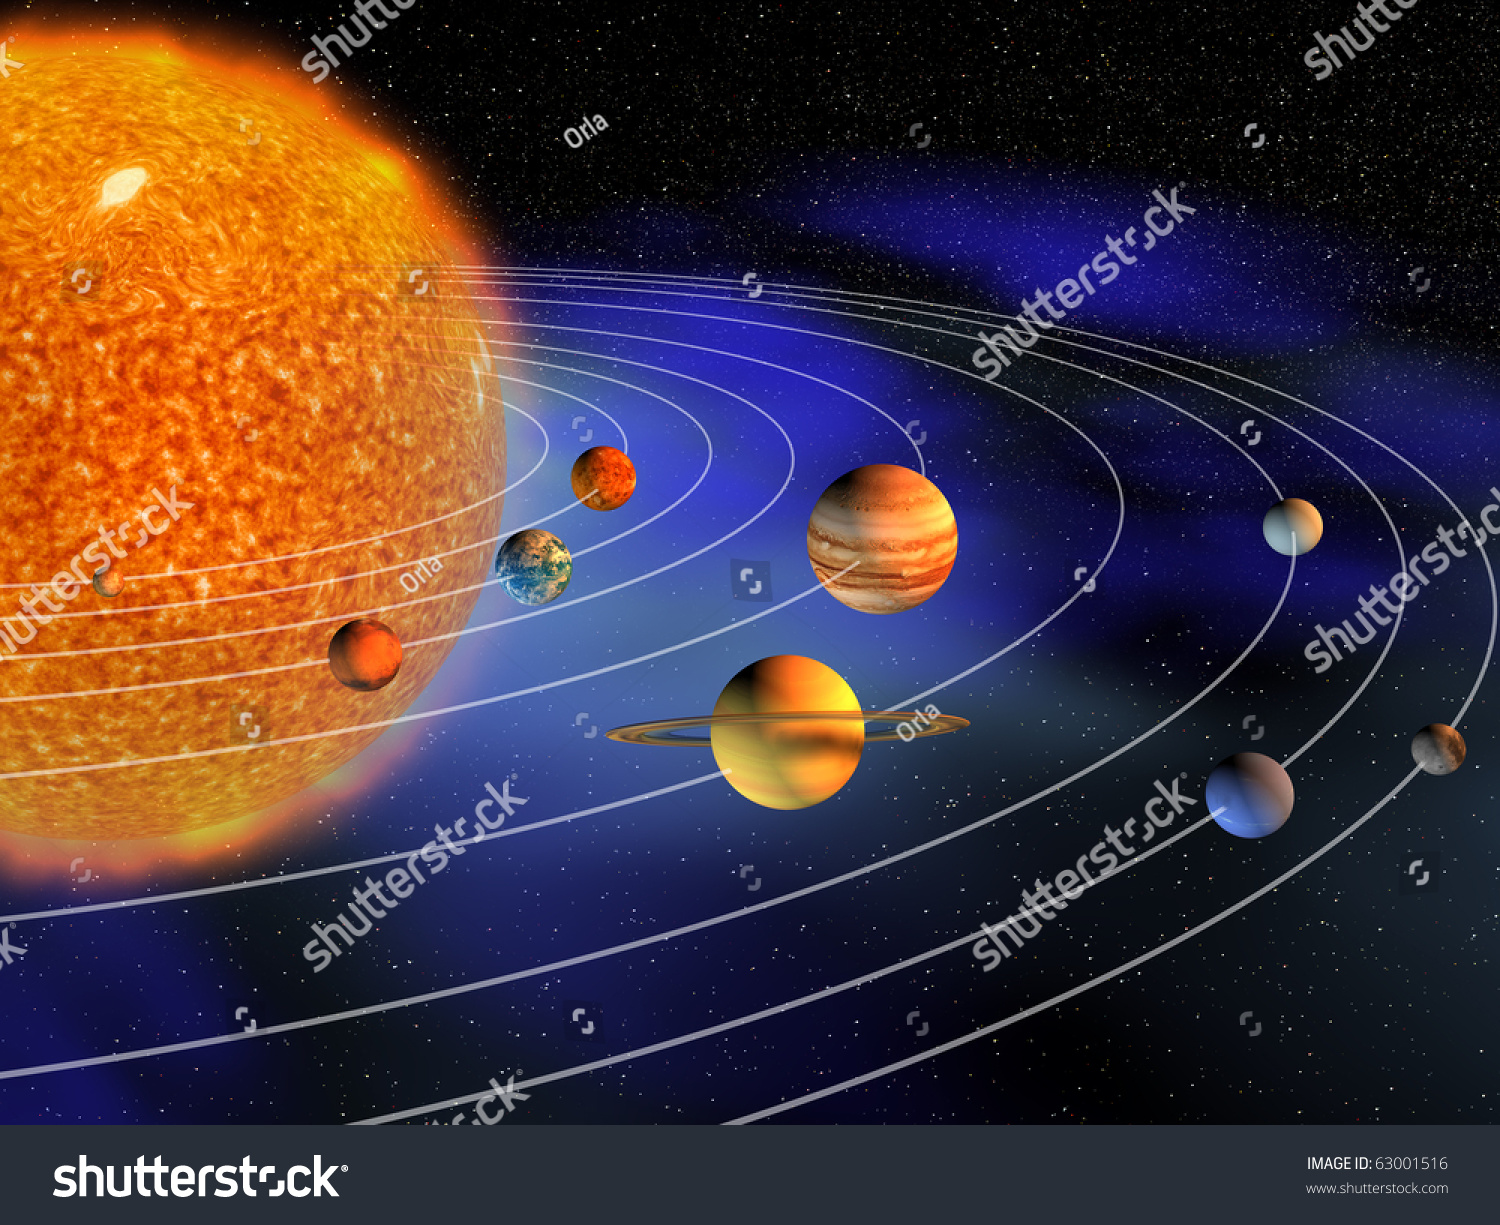 drawing of planets in solar system - photo #39